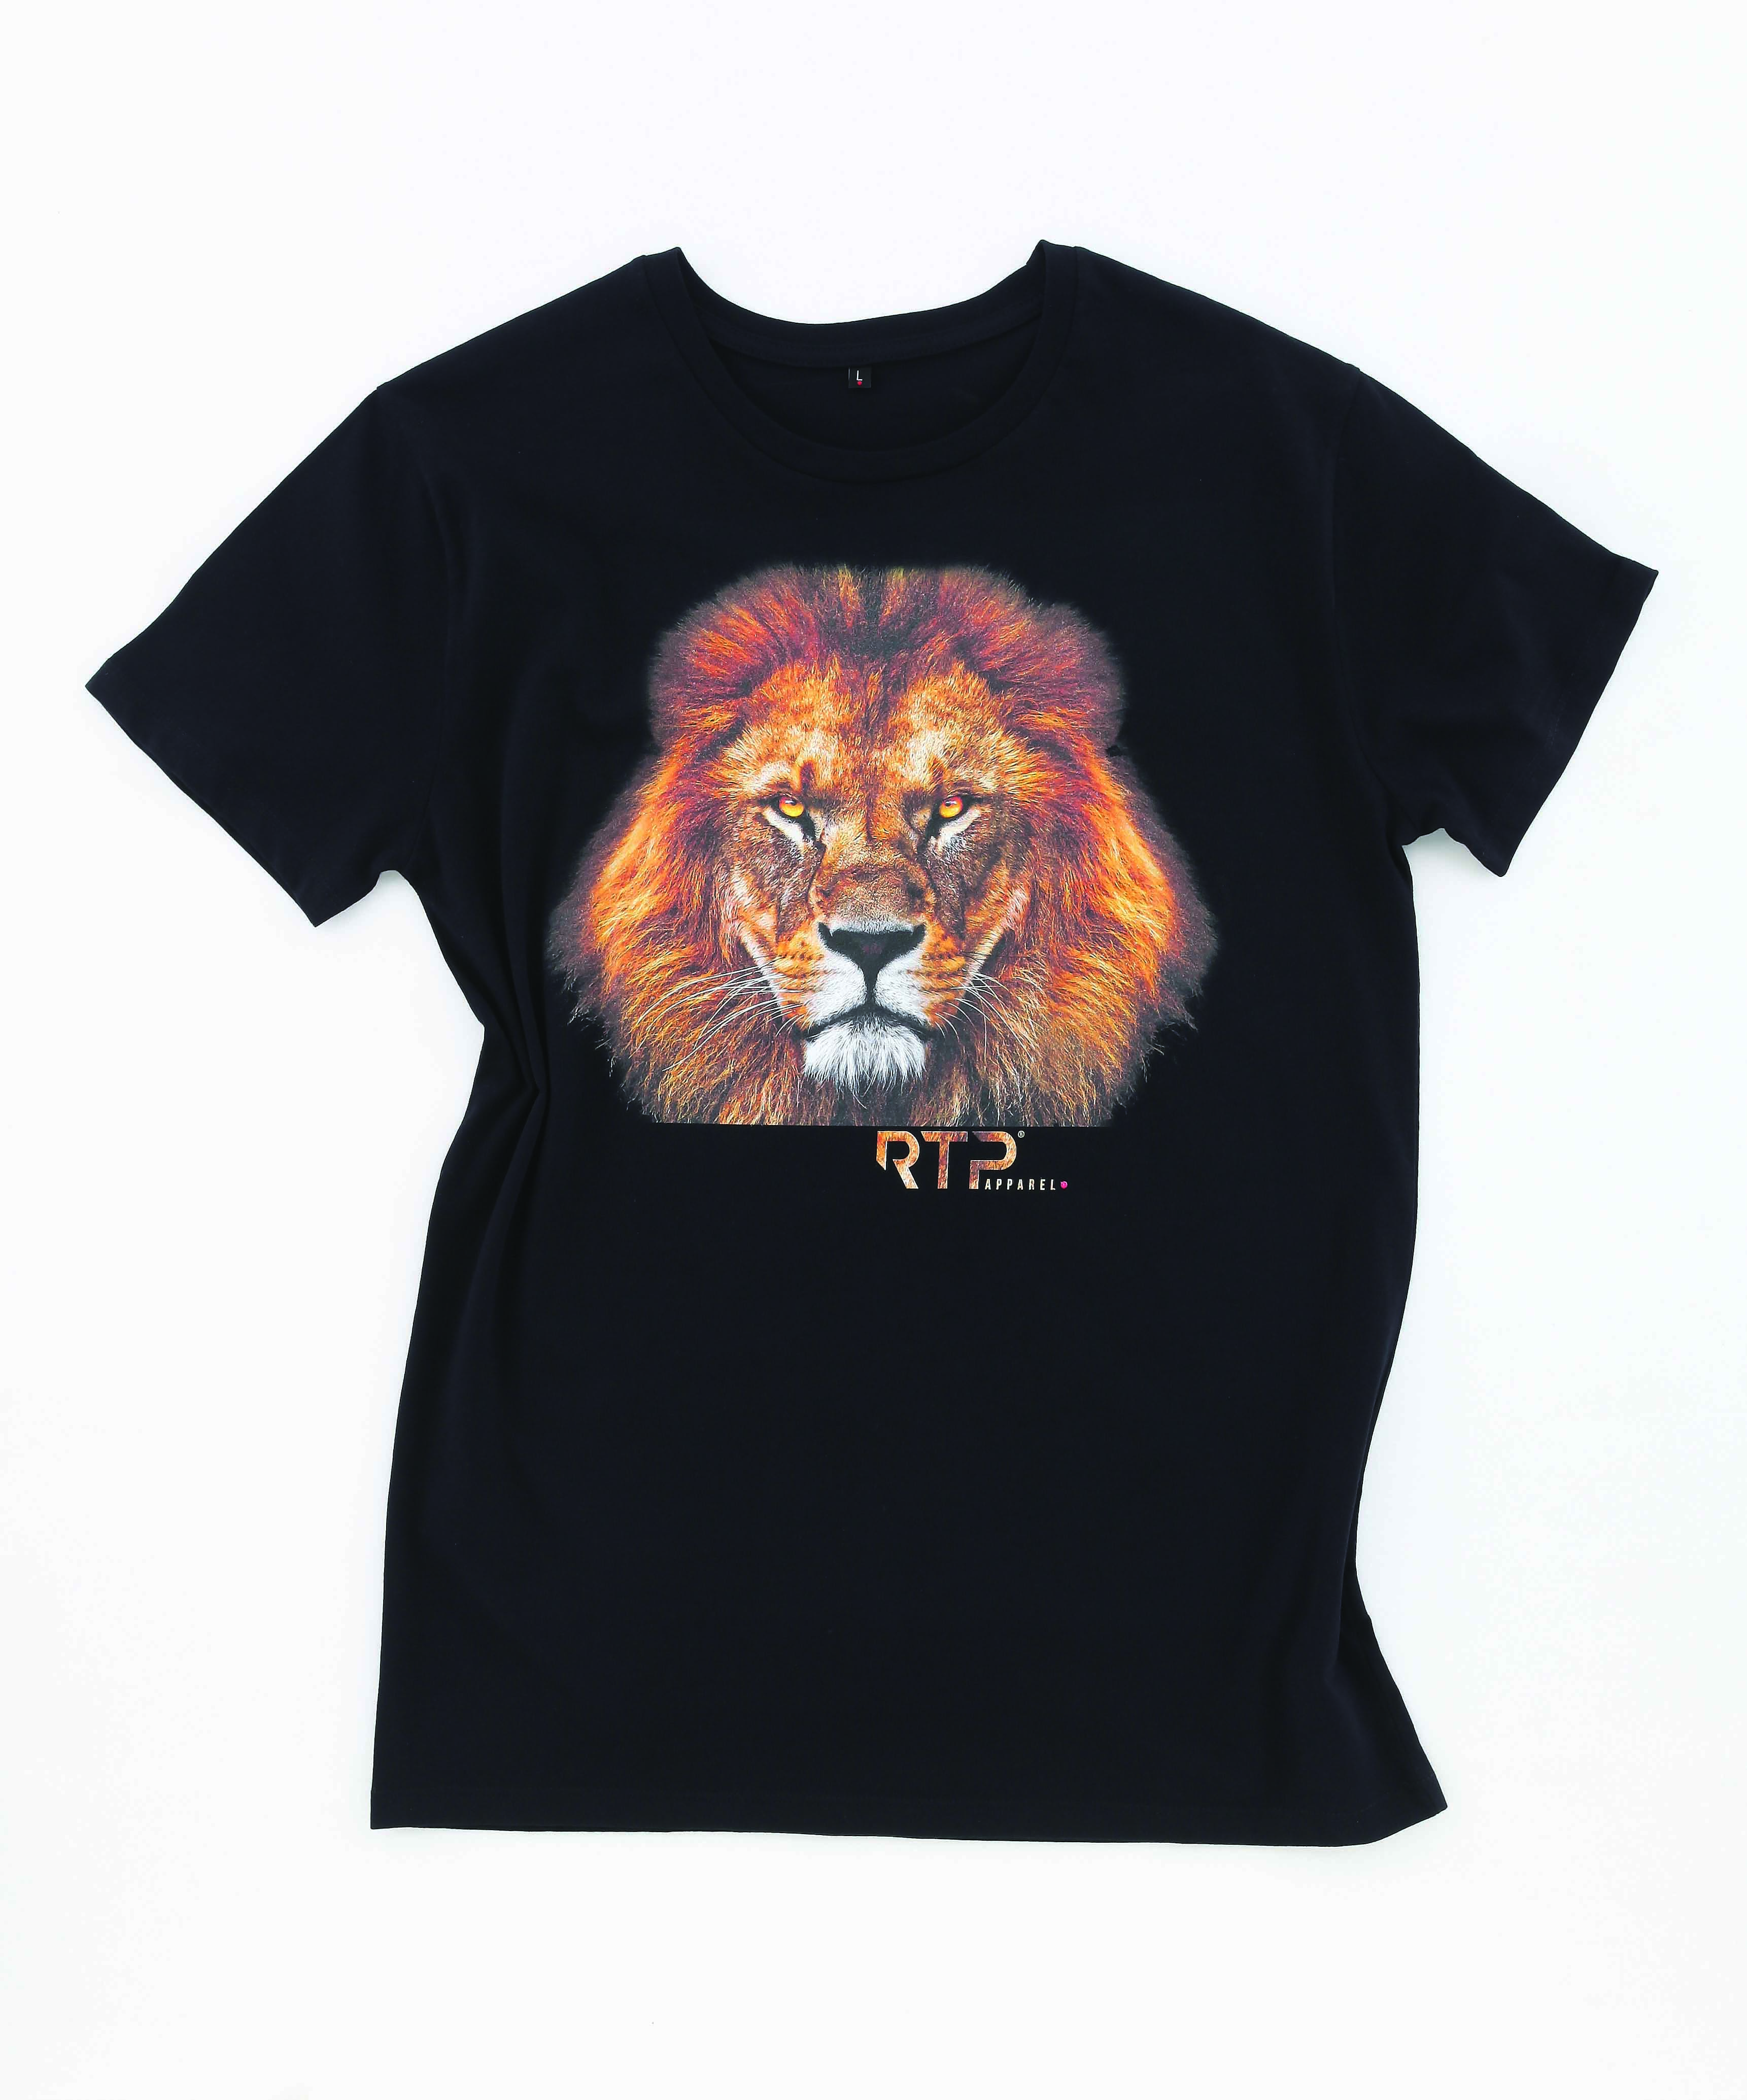 Tee-shirt homme manches courtes - 1-1452-7